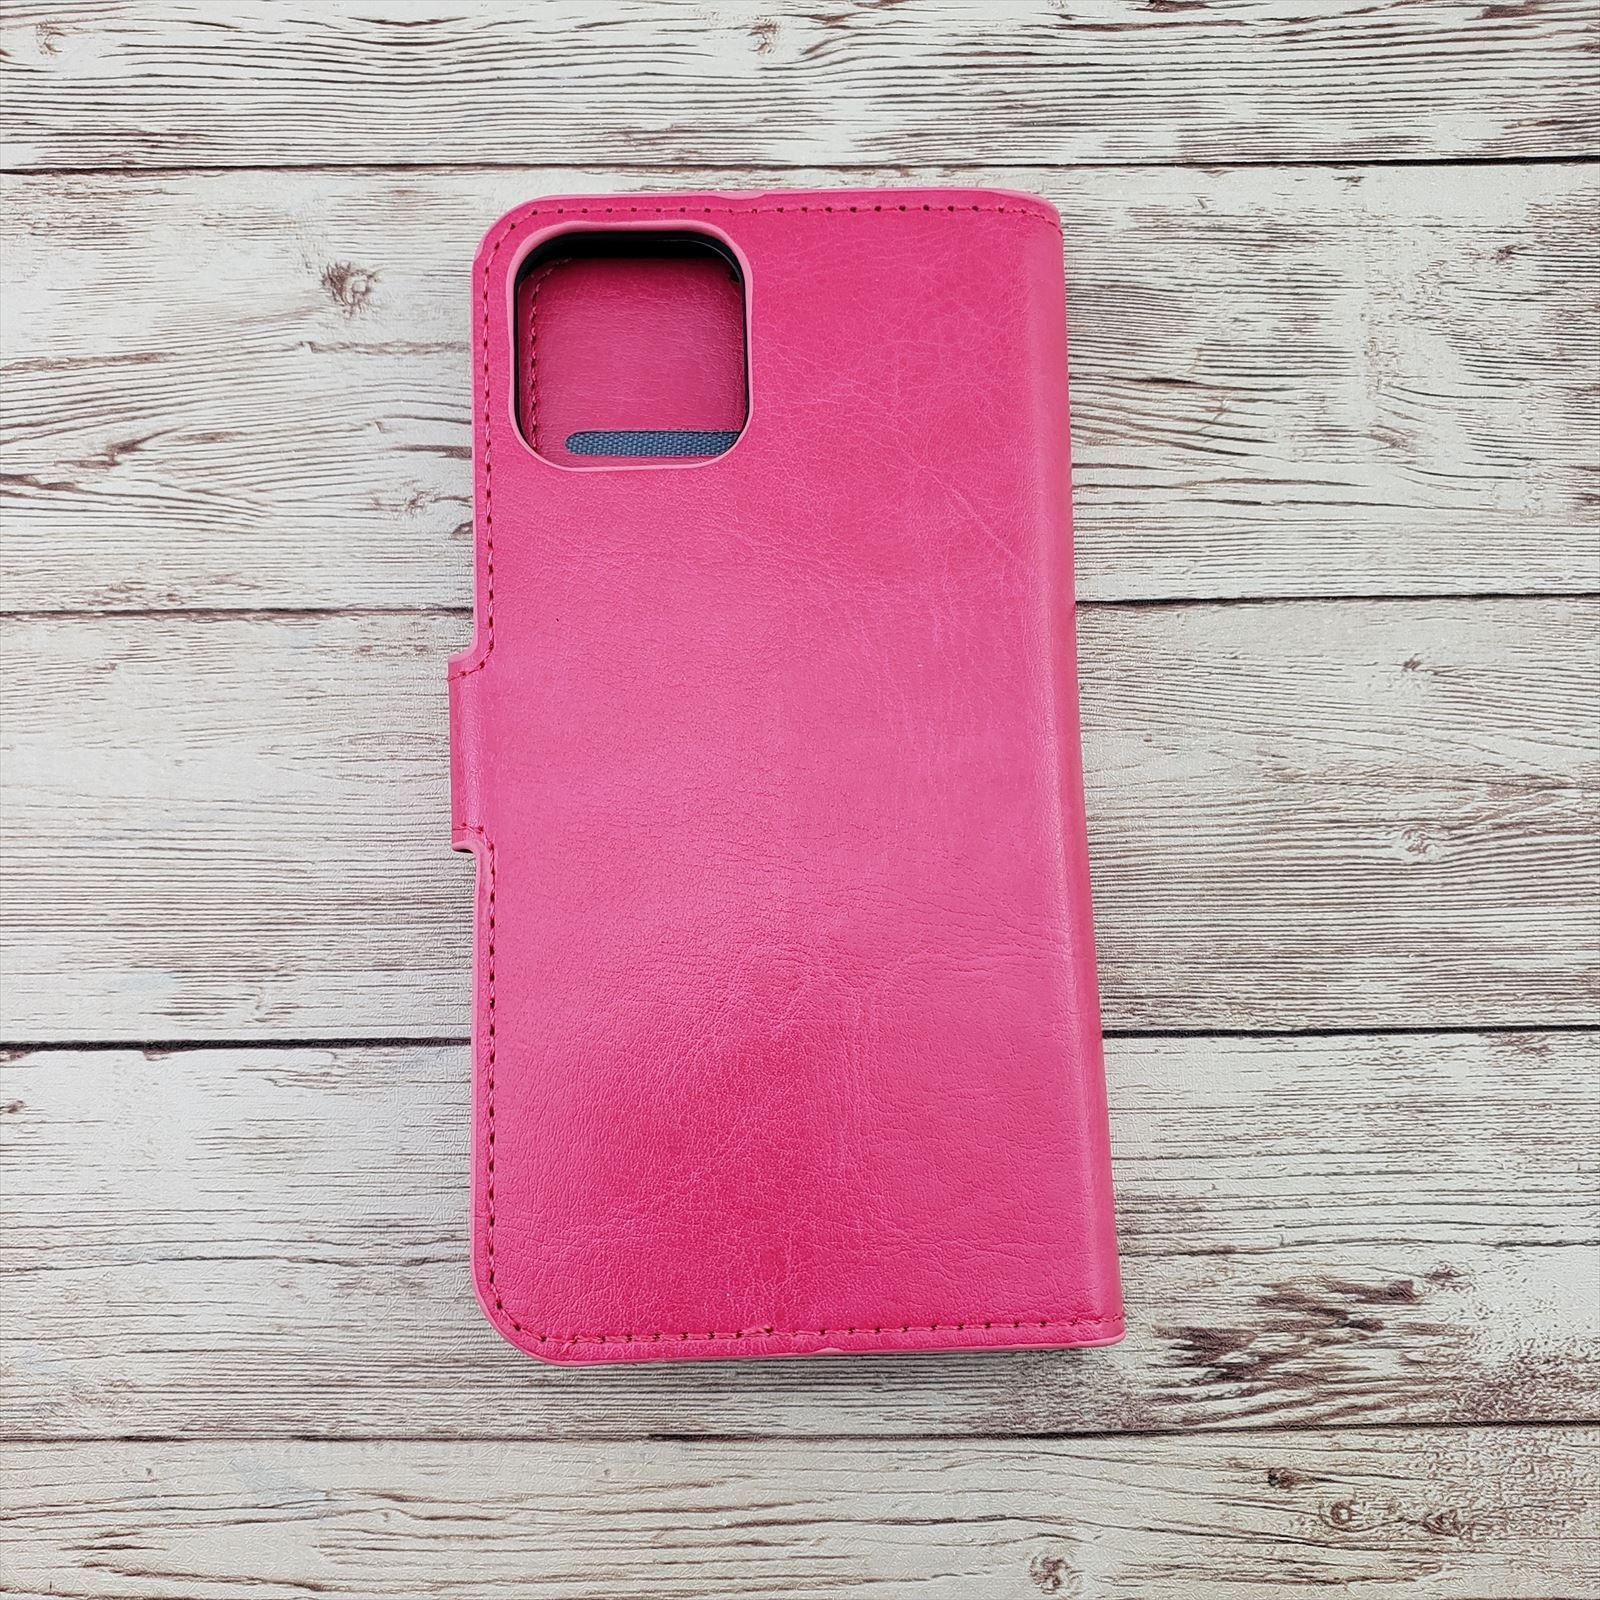 iPhone 12 Pink Wallet Case